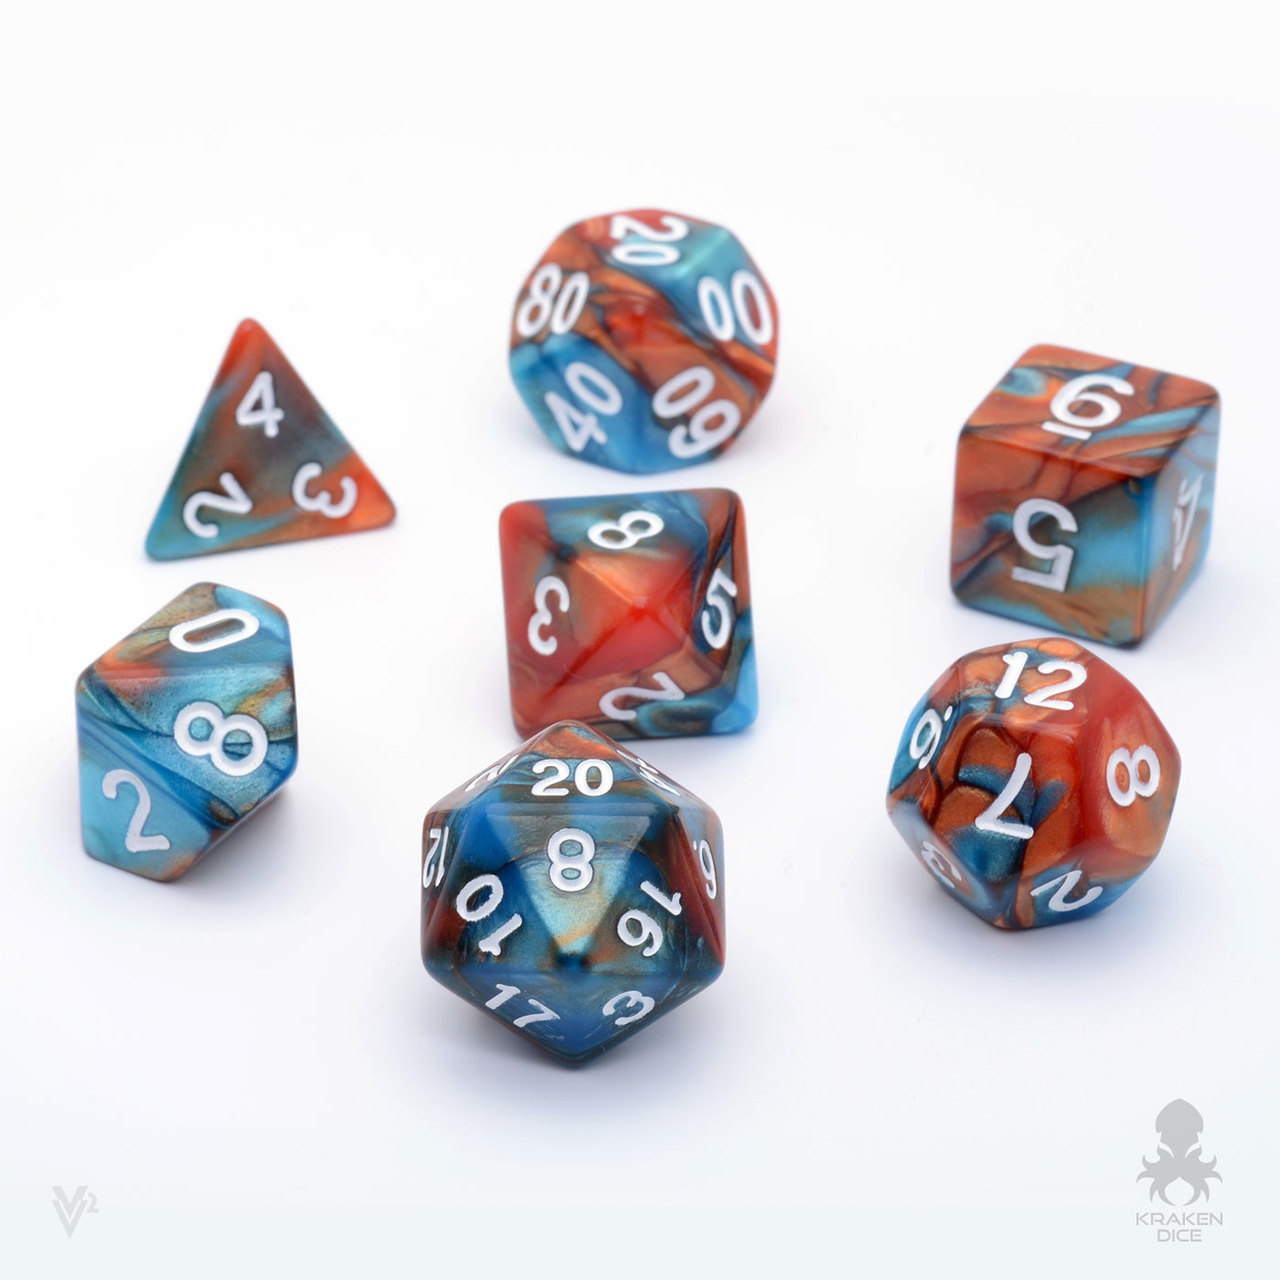 KD0136-Copper-River-Dice-Set-RPG__62359.1529450469